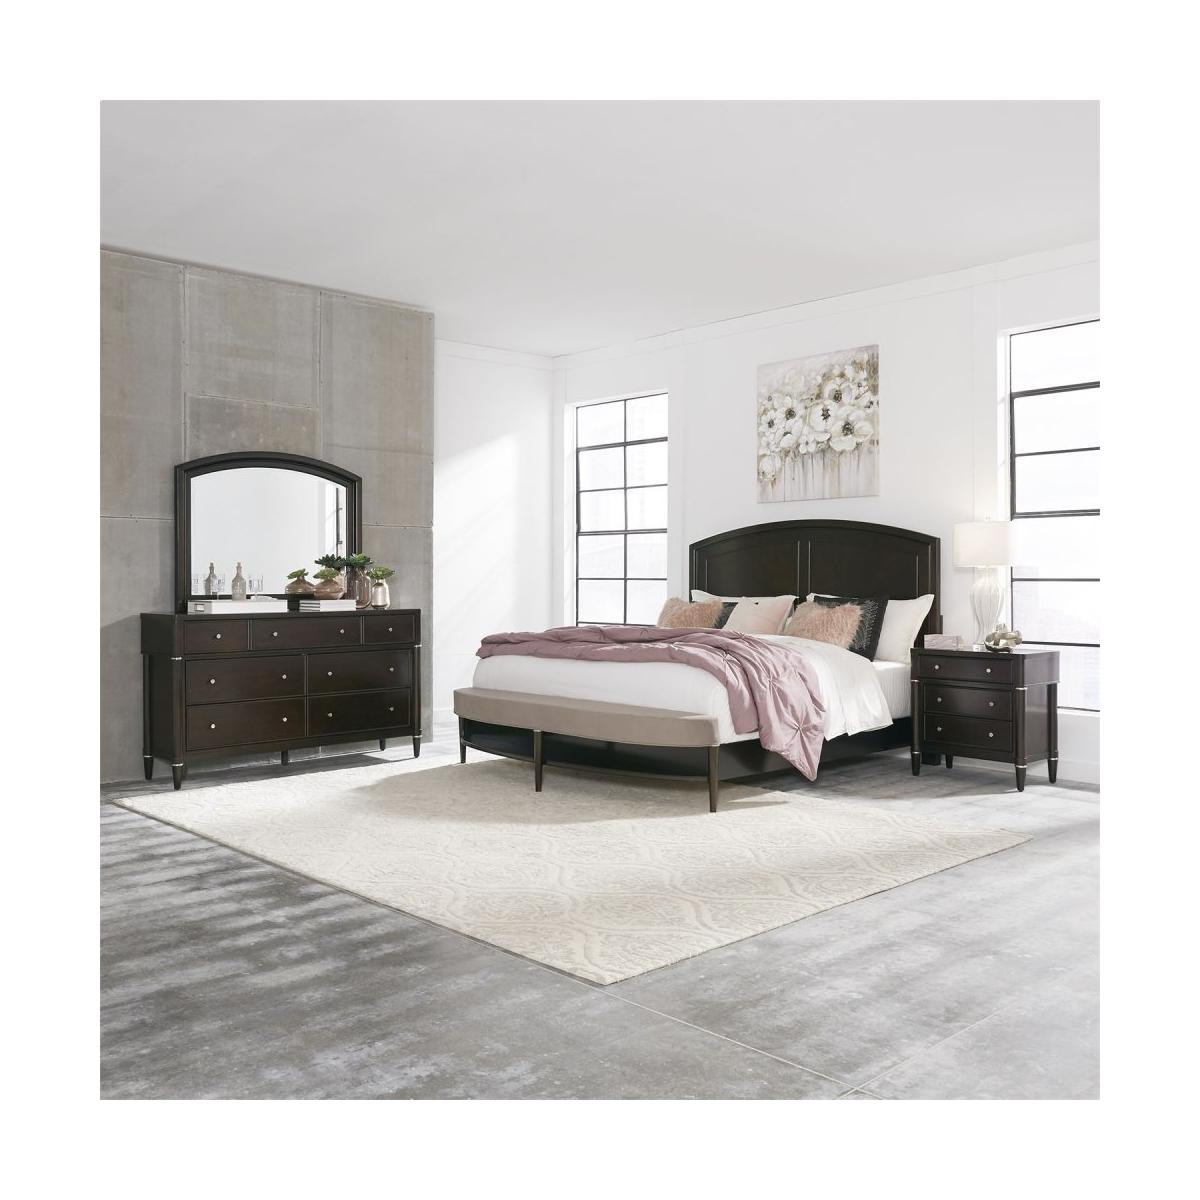 King Opt California Panel Bed, Dresser & Mirror, Night Stand